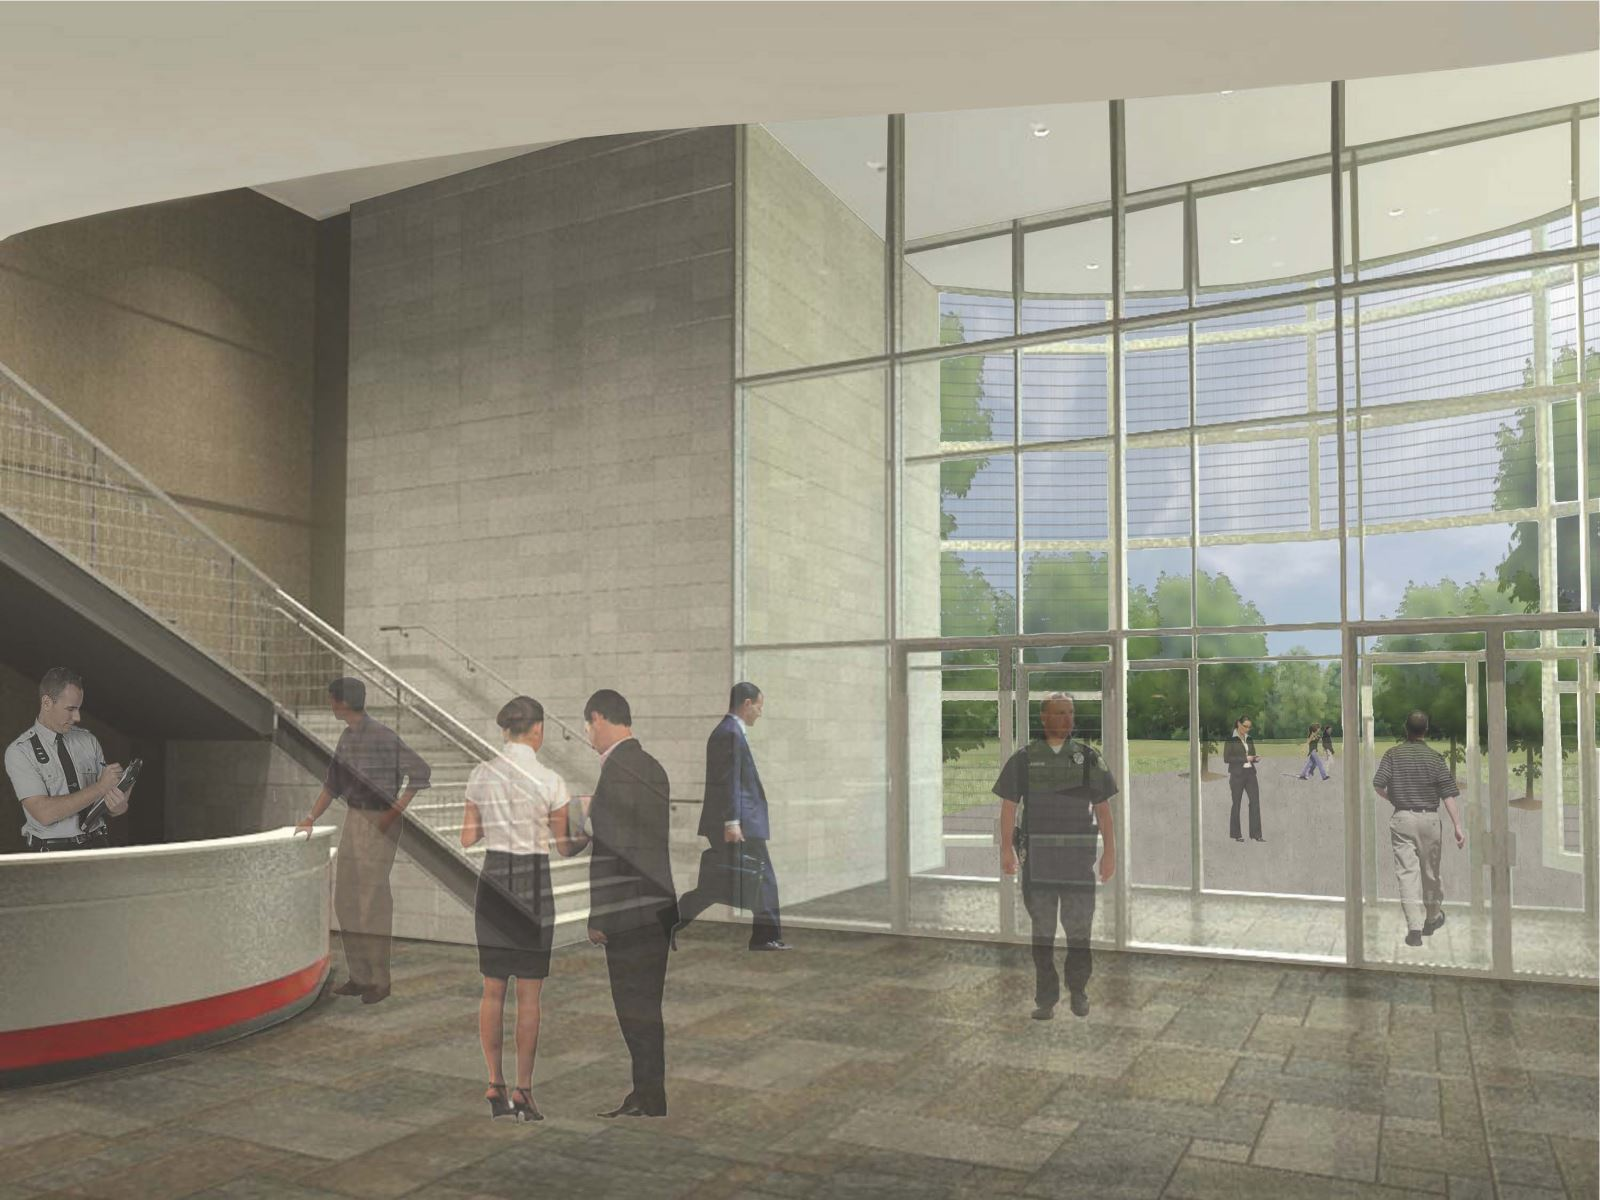 MASP & PSTA Project 3: Public Safety Training Academy - PSTA View of the Entry Lobby